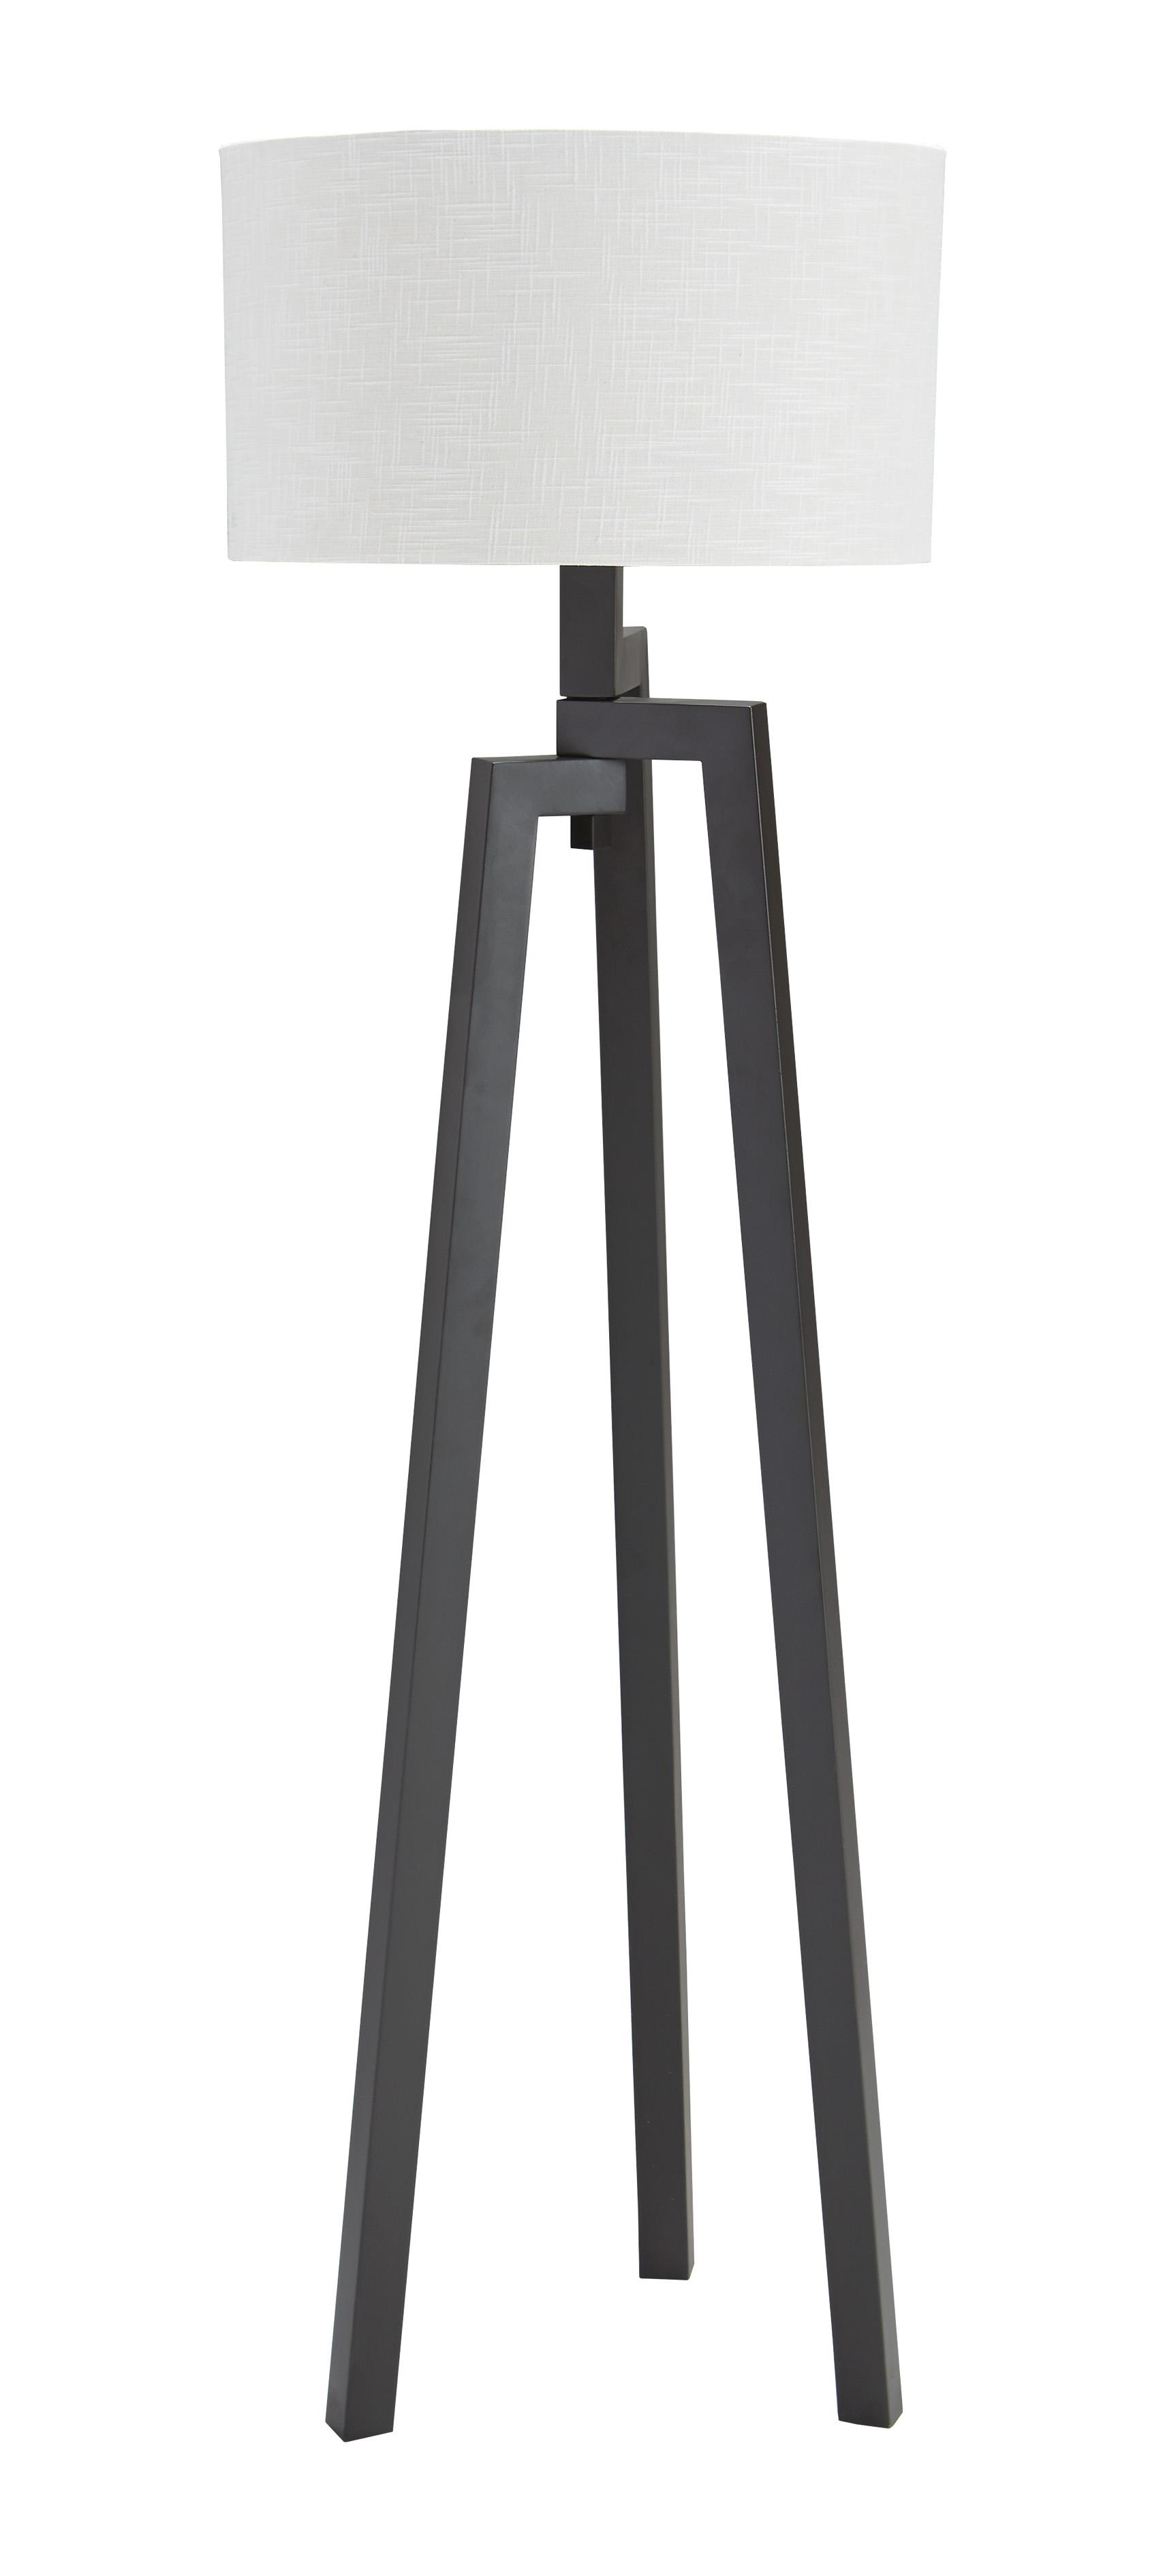 Signature Design by Ashley Lamps - Contemporary Metal Floor Lamp  - Item Number: L207951